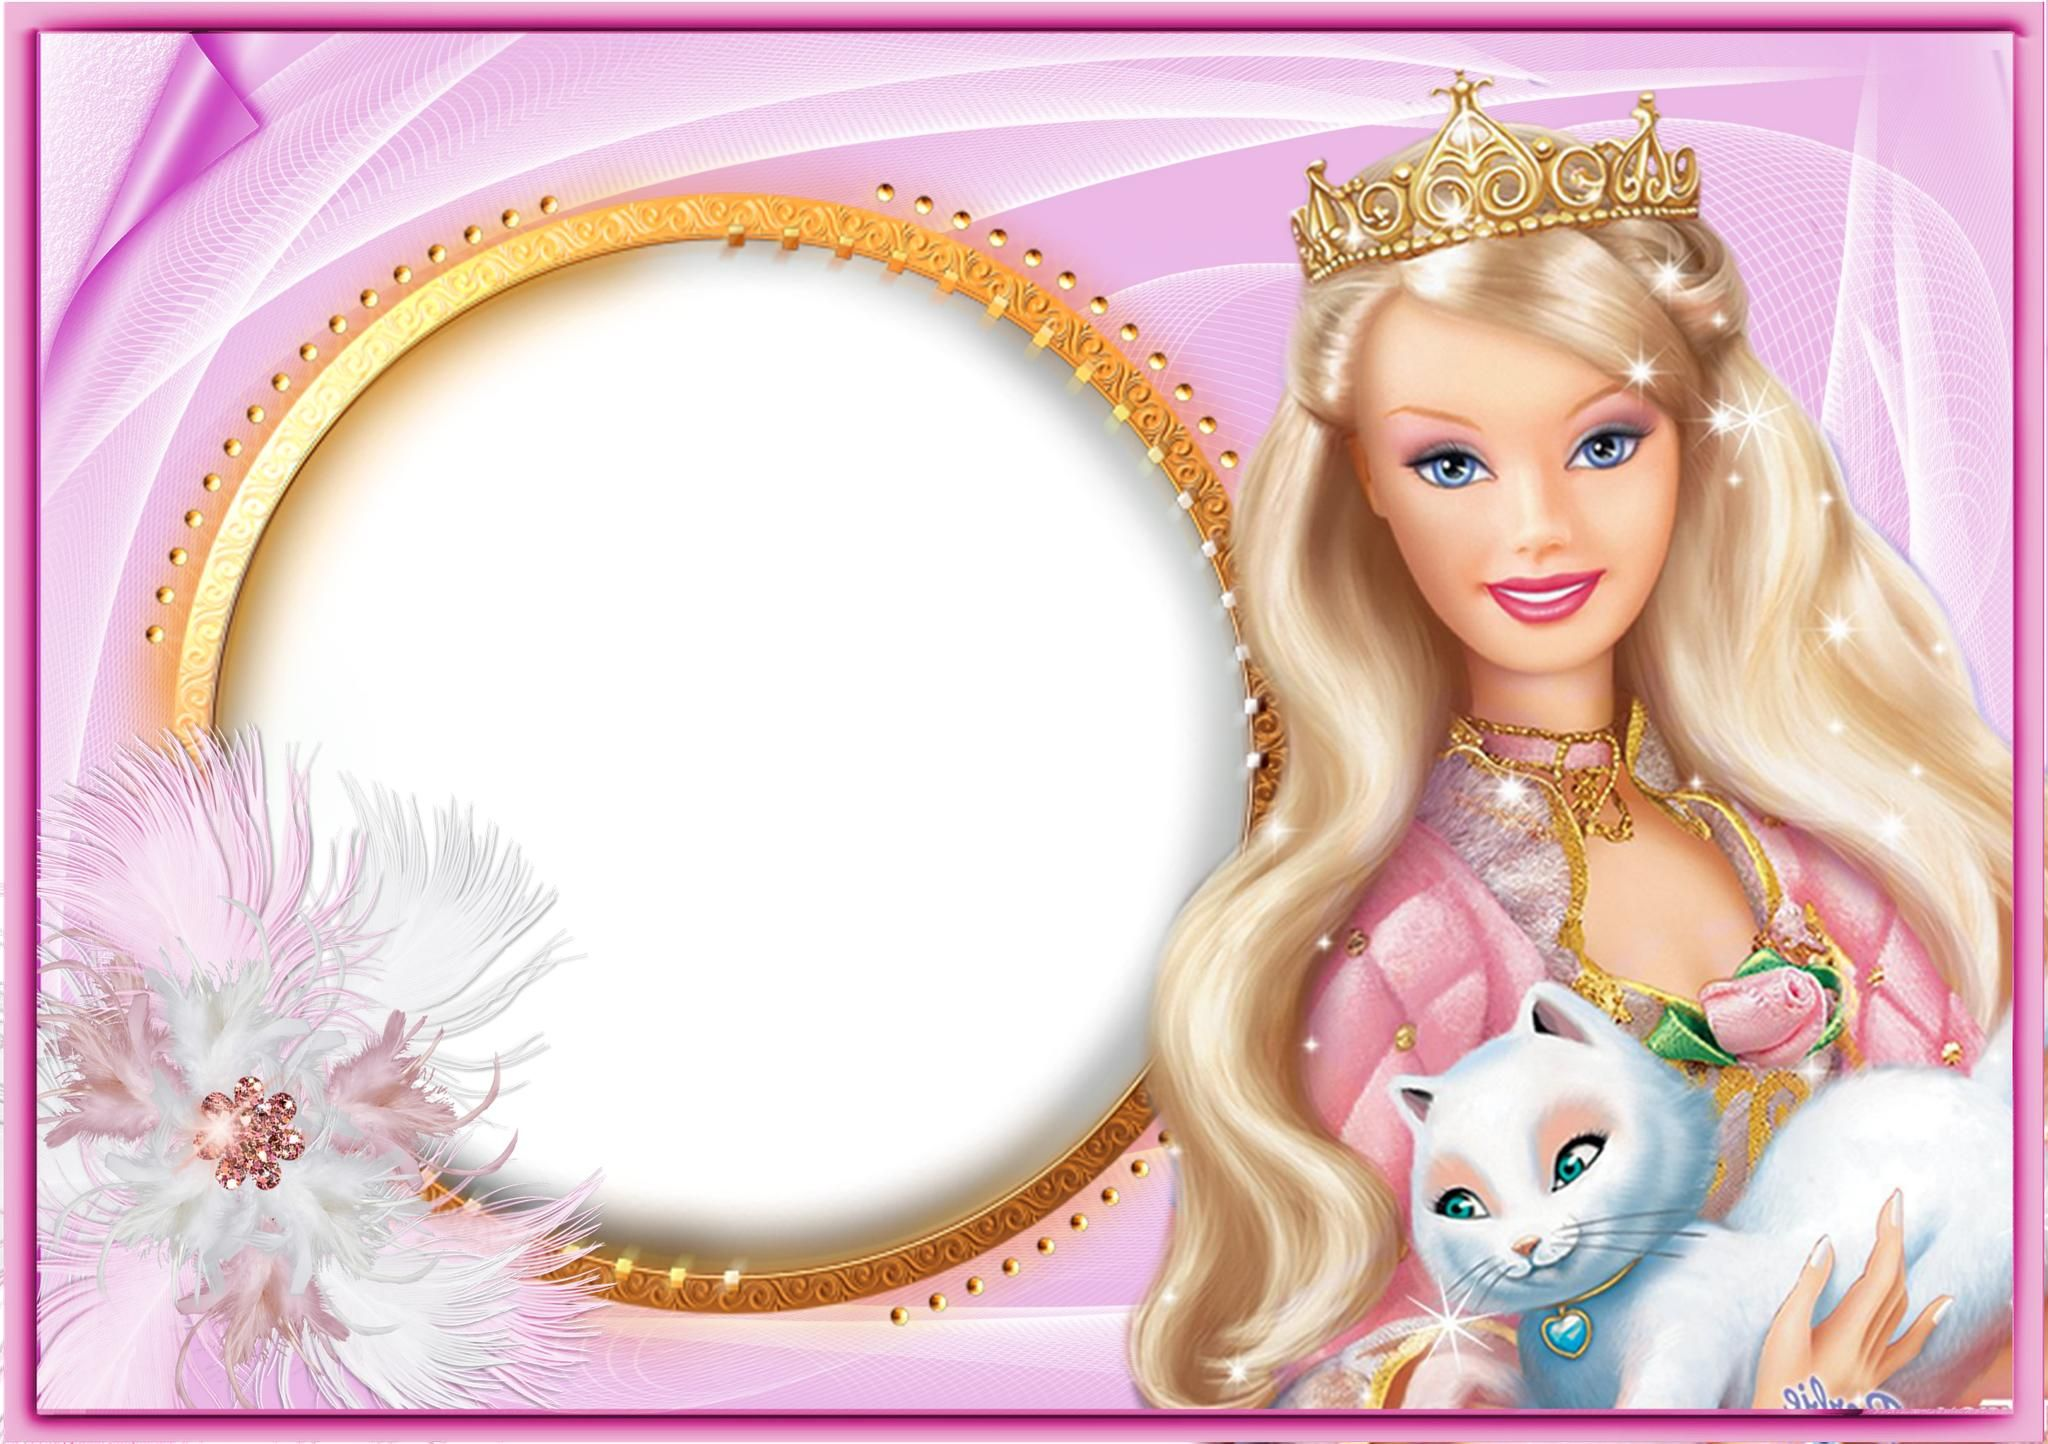 Top Best Beautiful Cute Barbie Doll HD Wallpapers Images | Makes Me ...